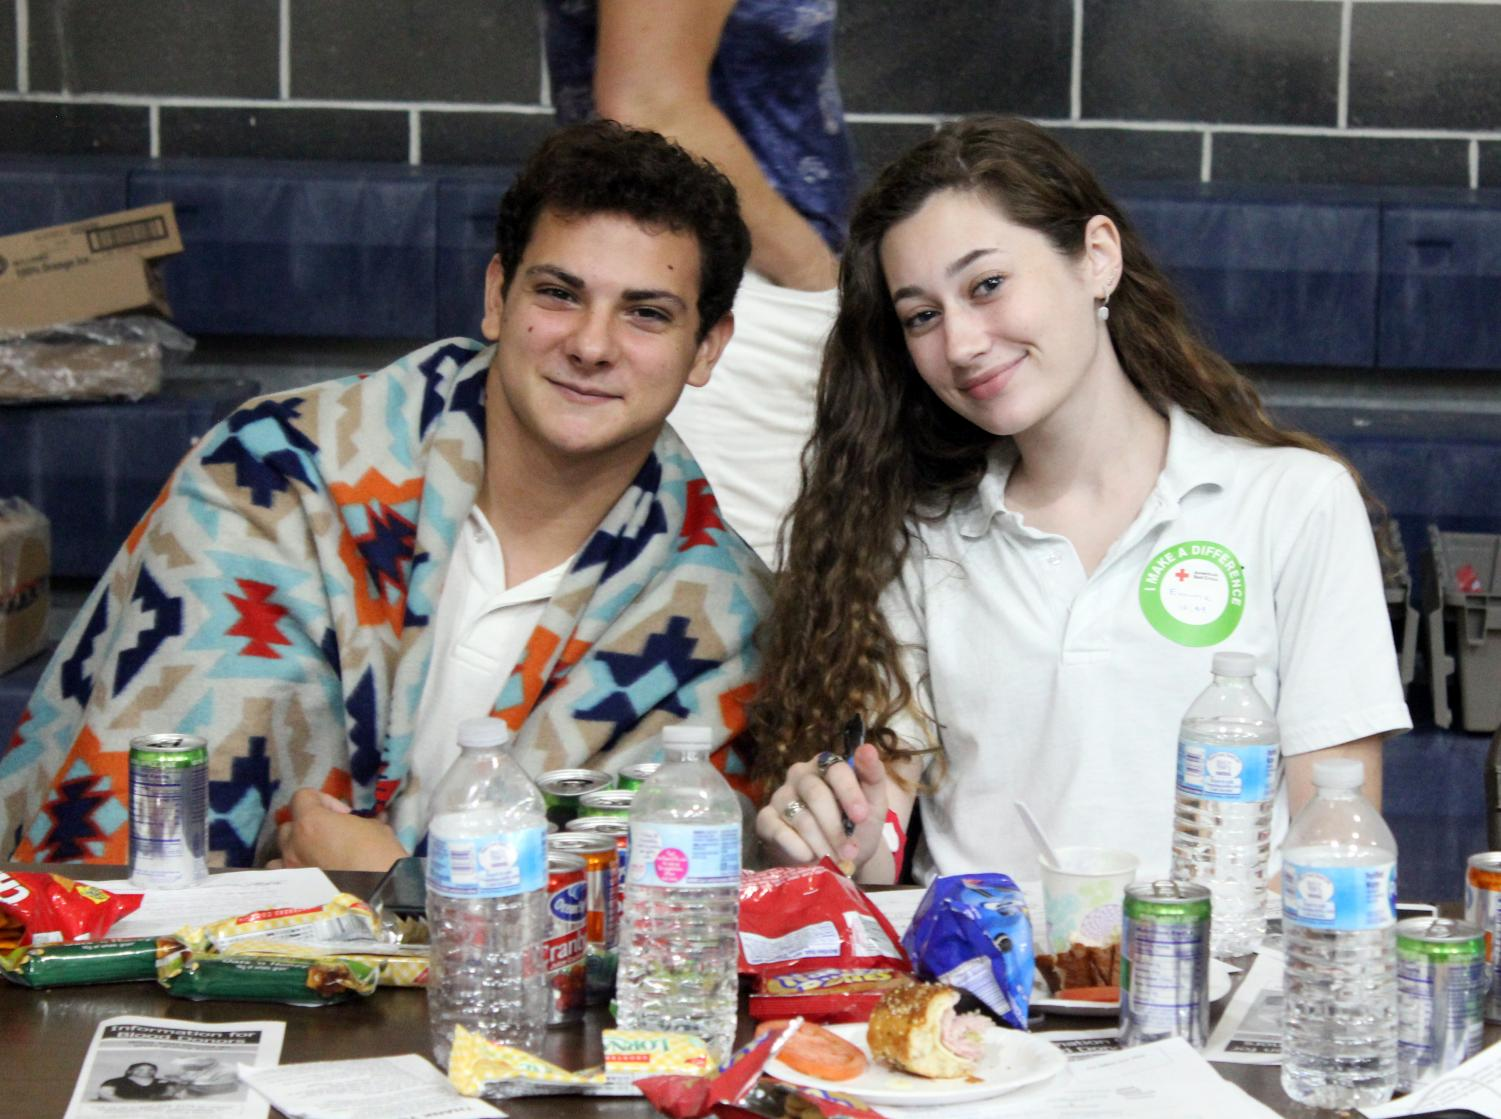 Seniors Nick Nowack and Emma Foy sit at the snack table after donating blood last spring. Their contributions helped St. Pius X earn the